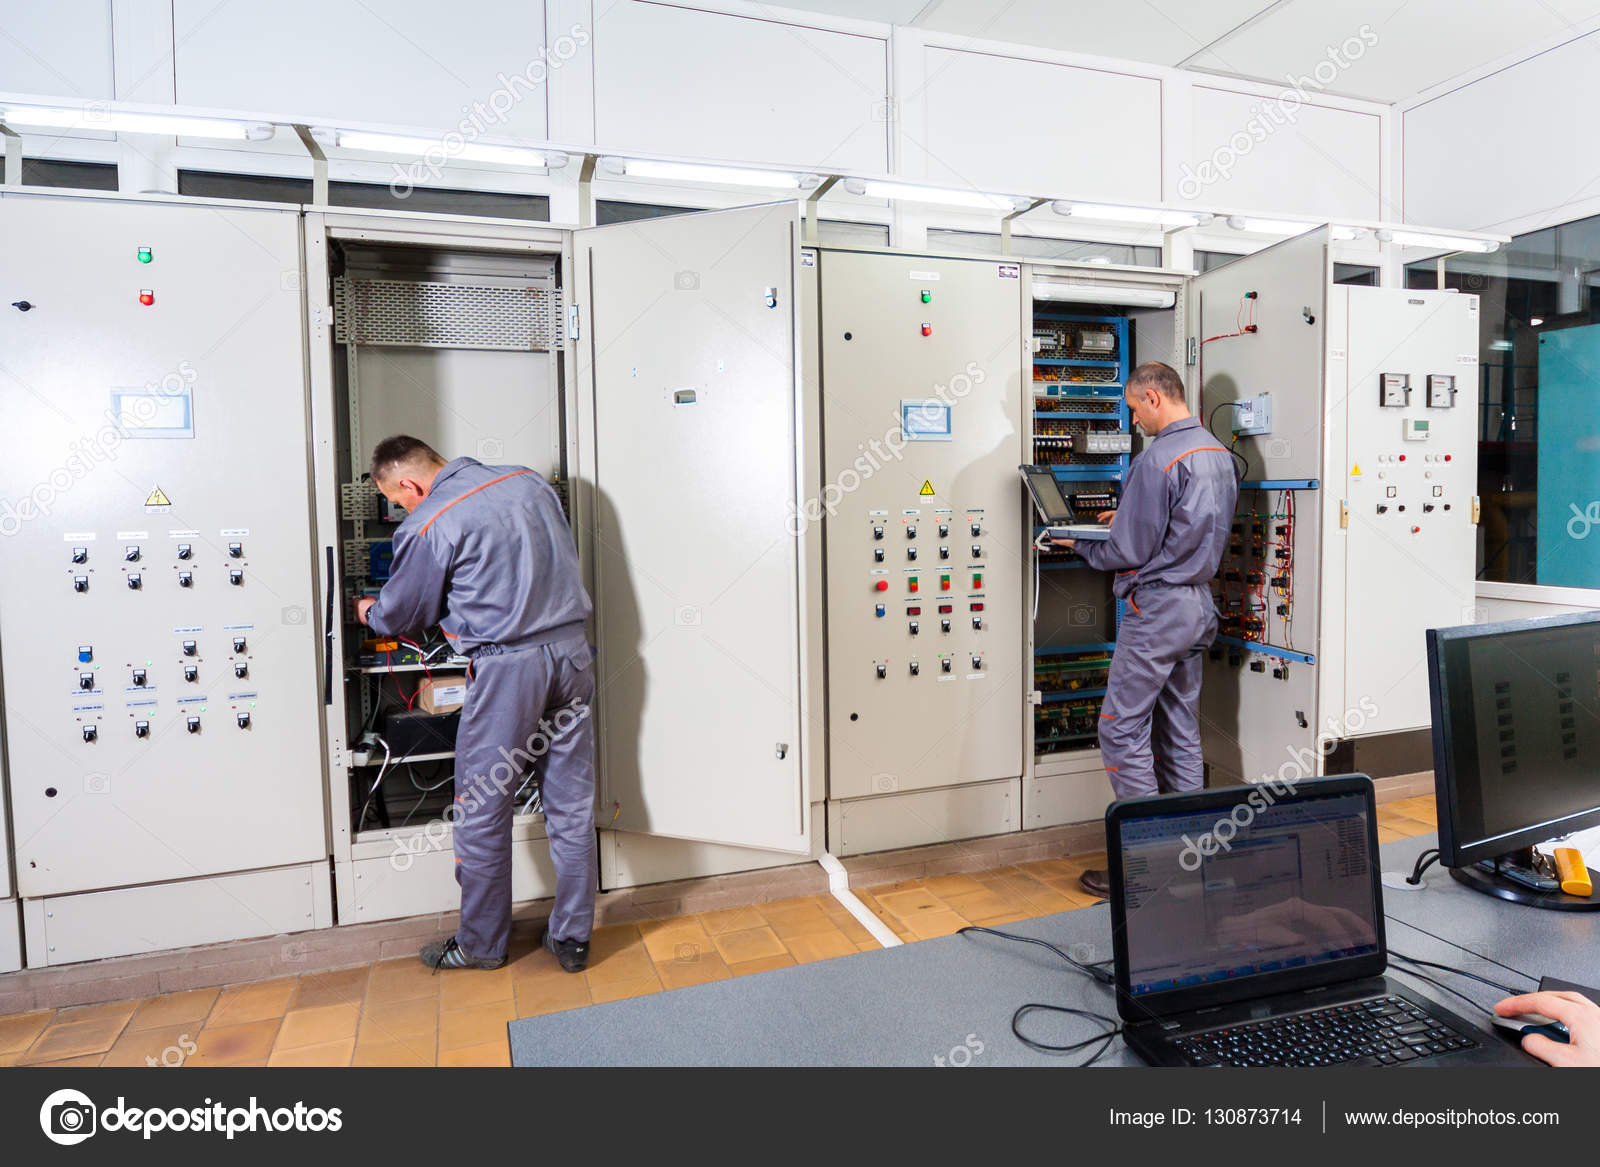 [DIAGRAM_0HG]  Electrician testing industrial machine, electrician builder engineer  screwing equipment in fuse box, Male Electrician — Stock Photo © bondvit  #130873714 | Industrial Fuse Box |  | Depositphotos